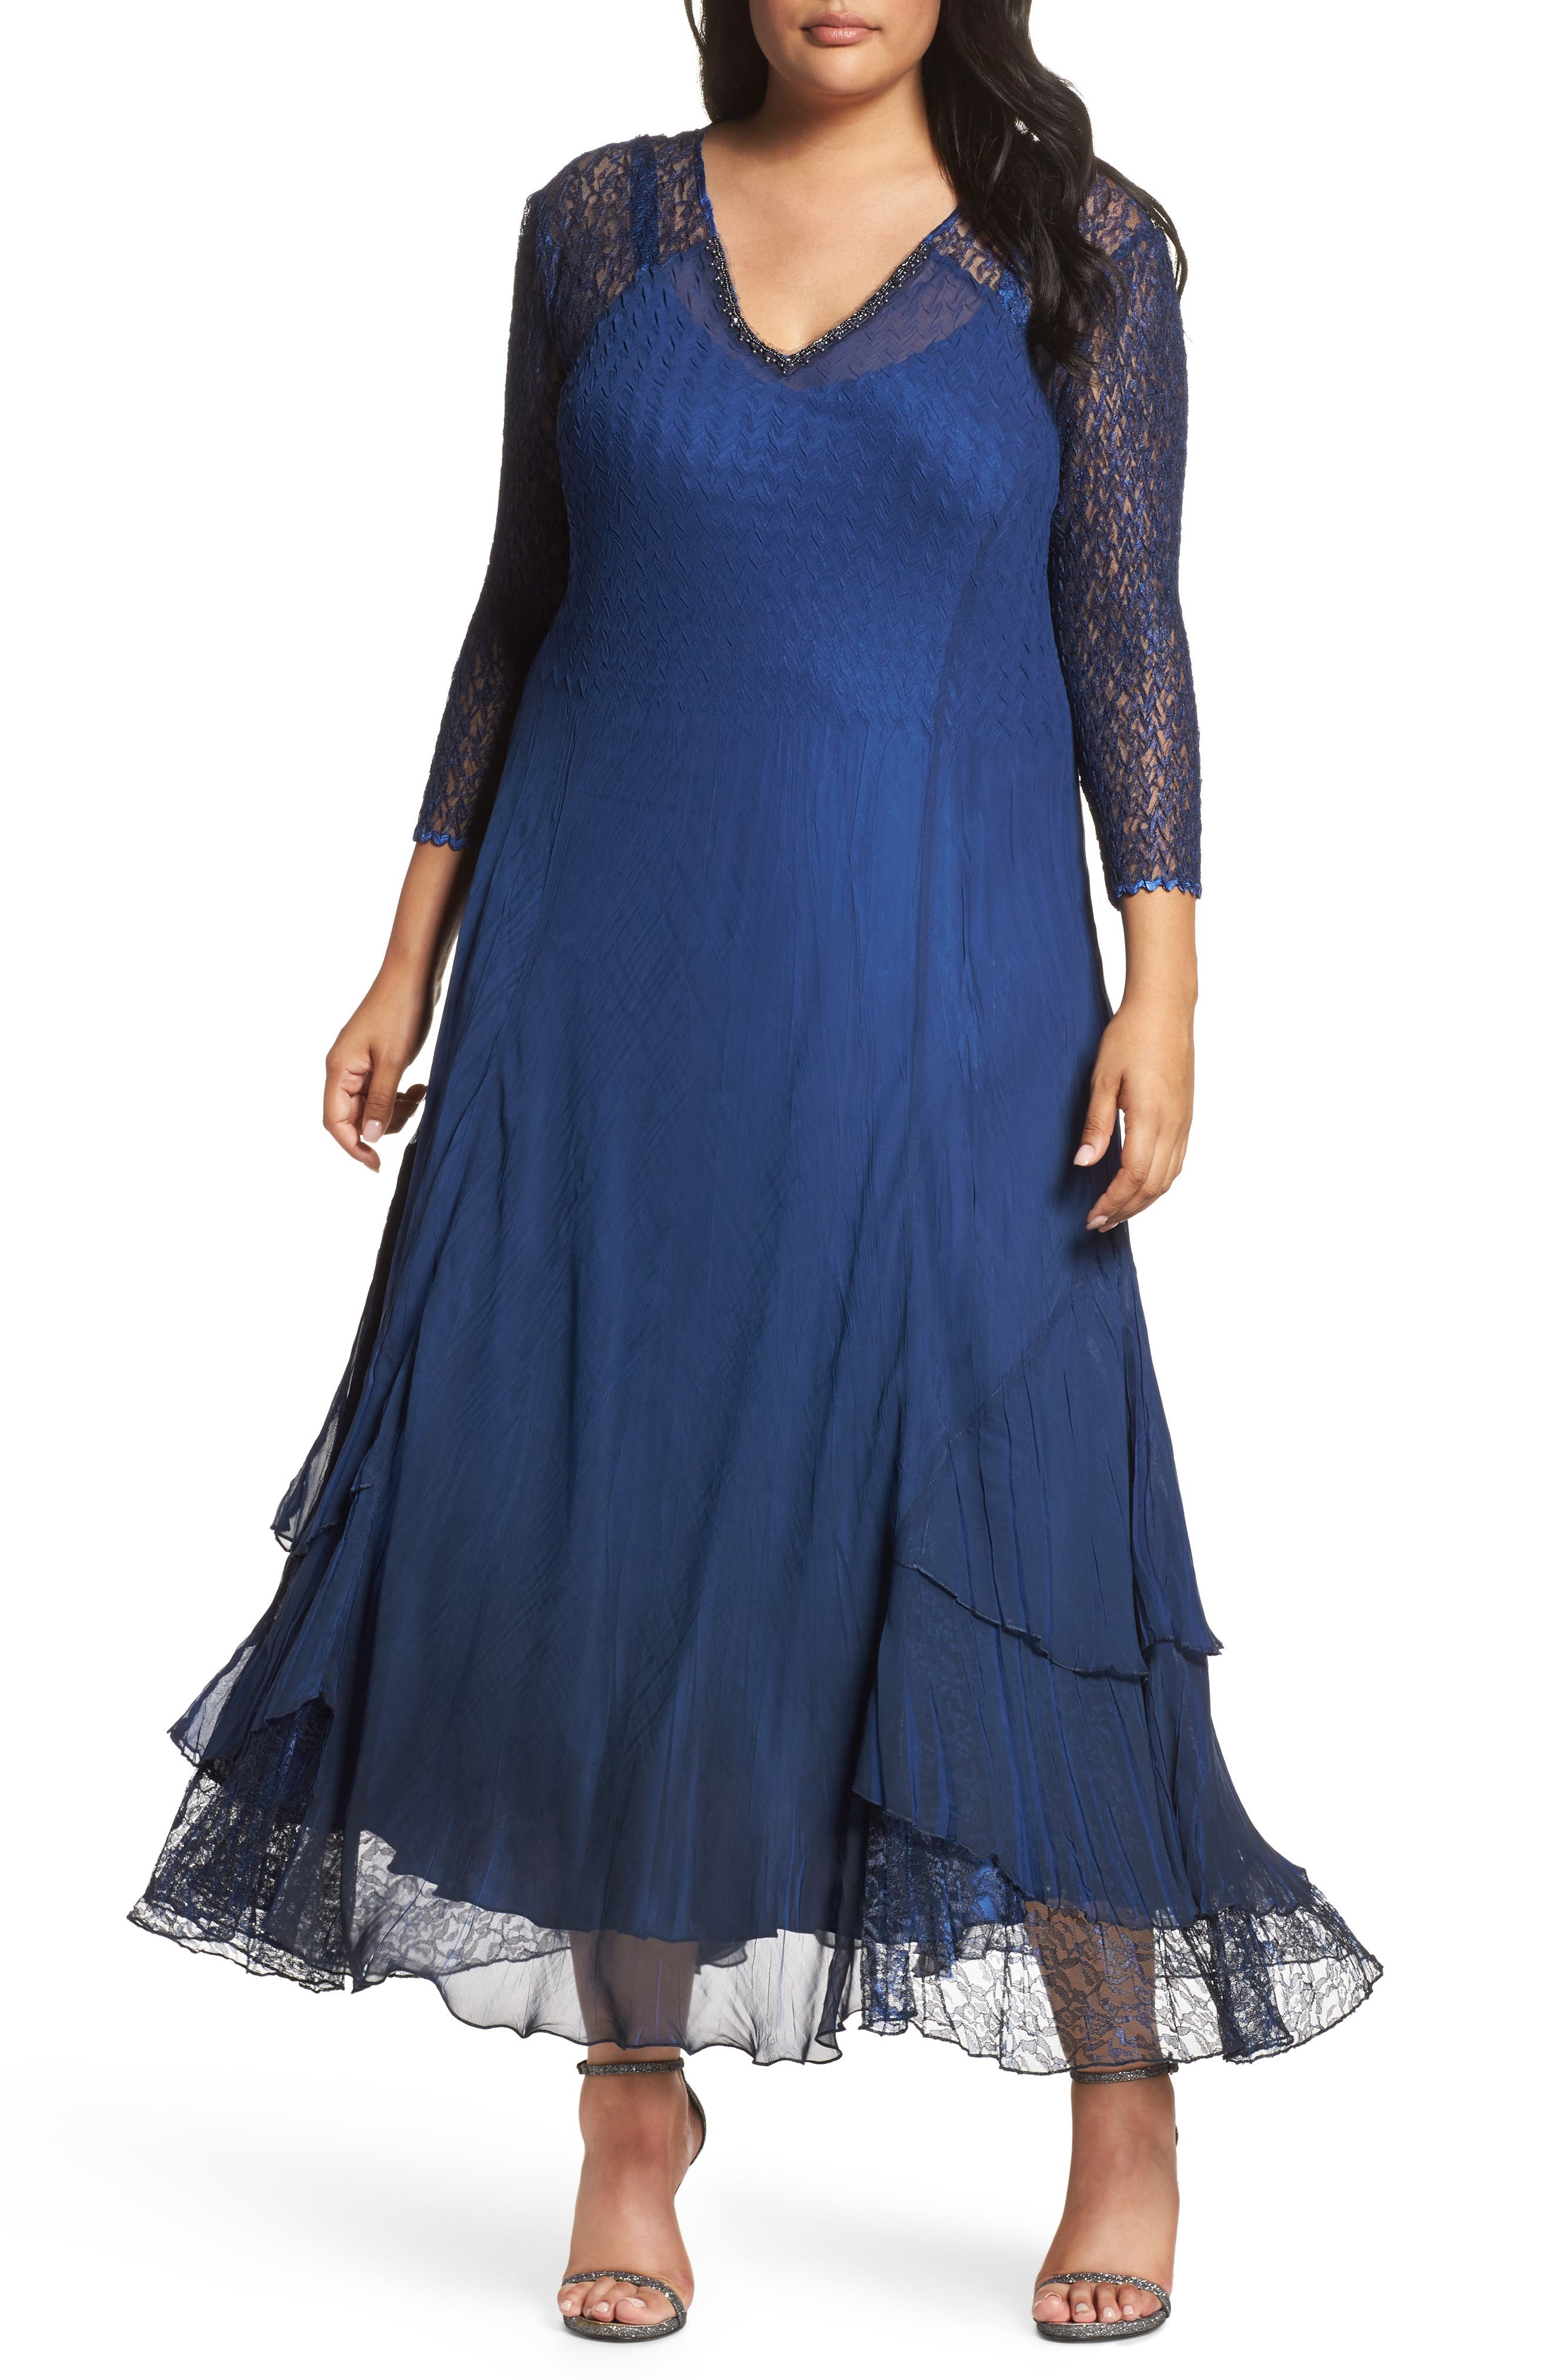 Alternate Image 1 Selected - Komarov Chiffon Tiered A-Line Dress (Plus Size)